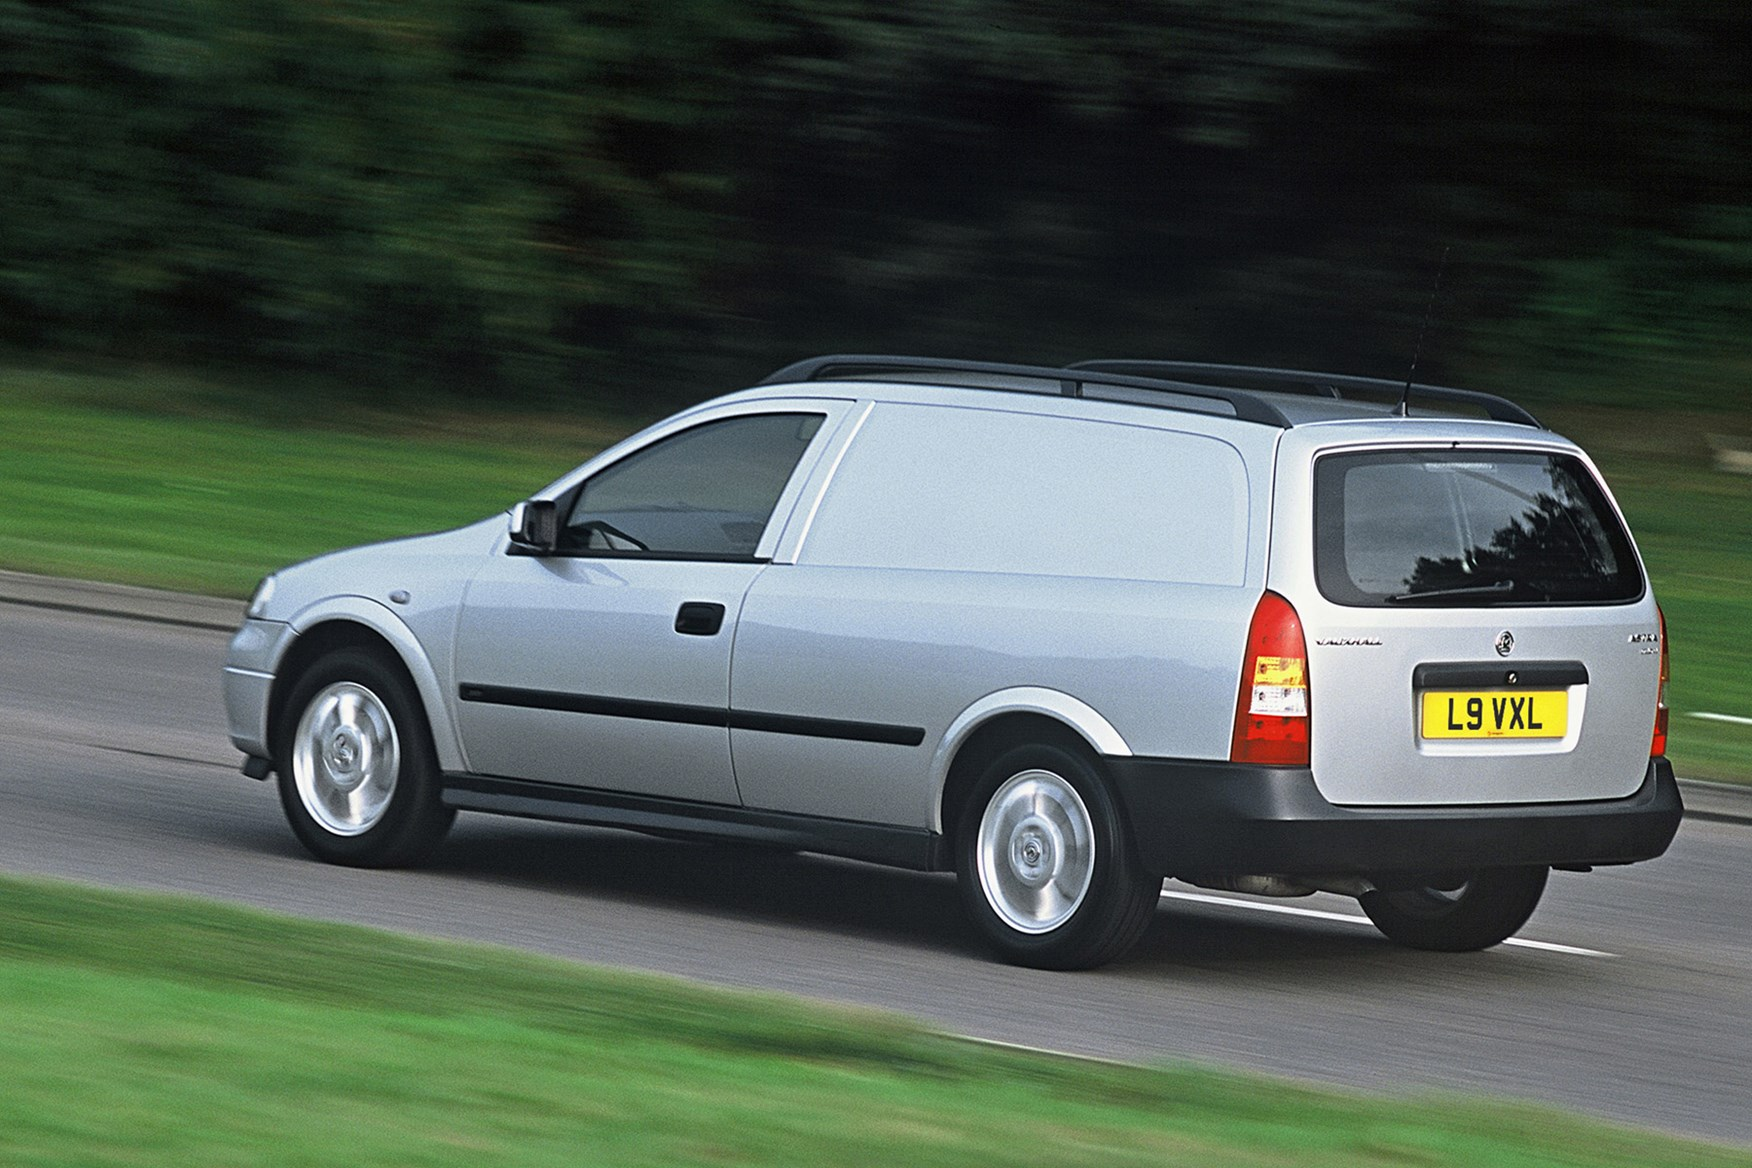 Vauxhall Astra review on Parkers Vans - rear exterior